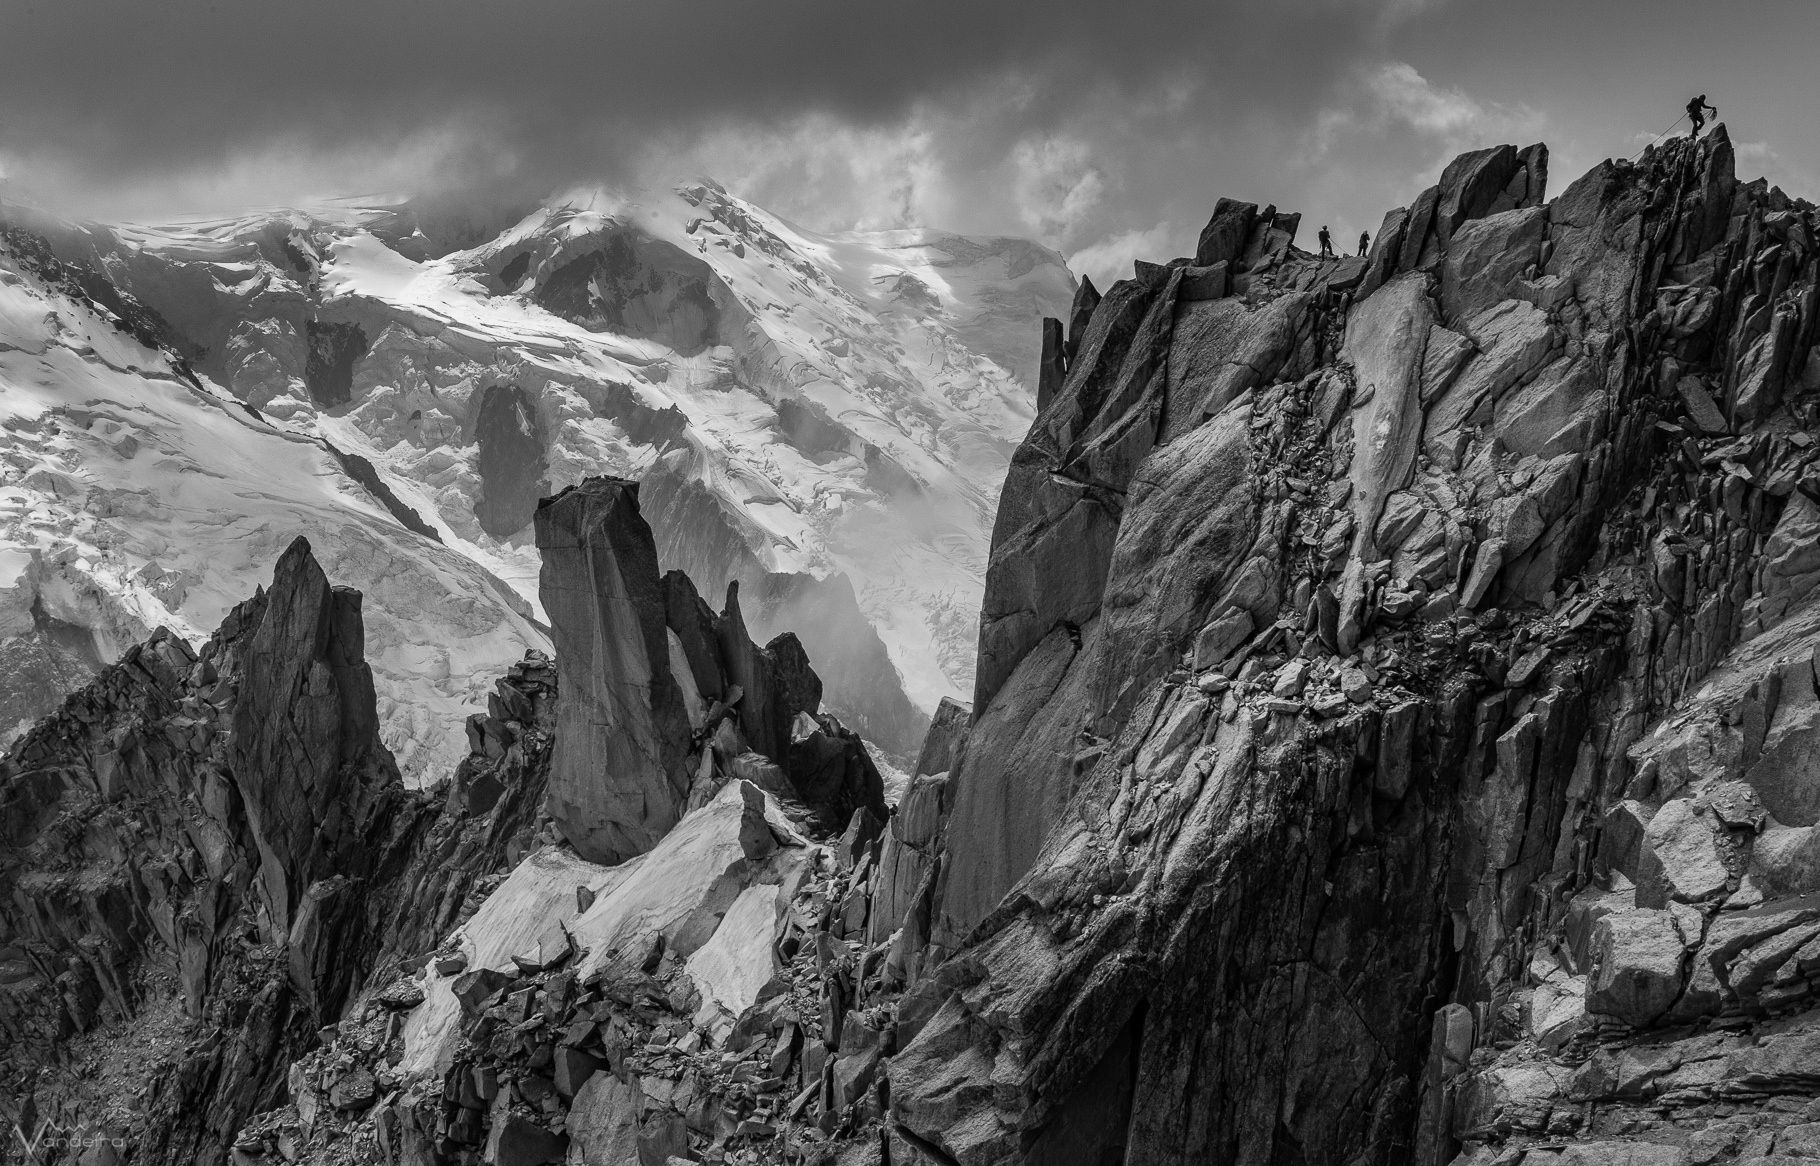 Alpinism by Edson Vandeira on 500px